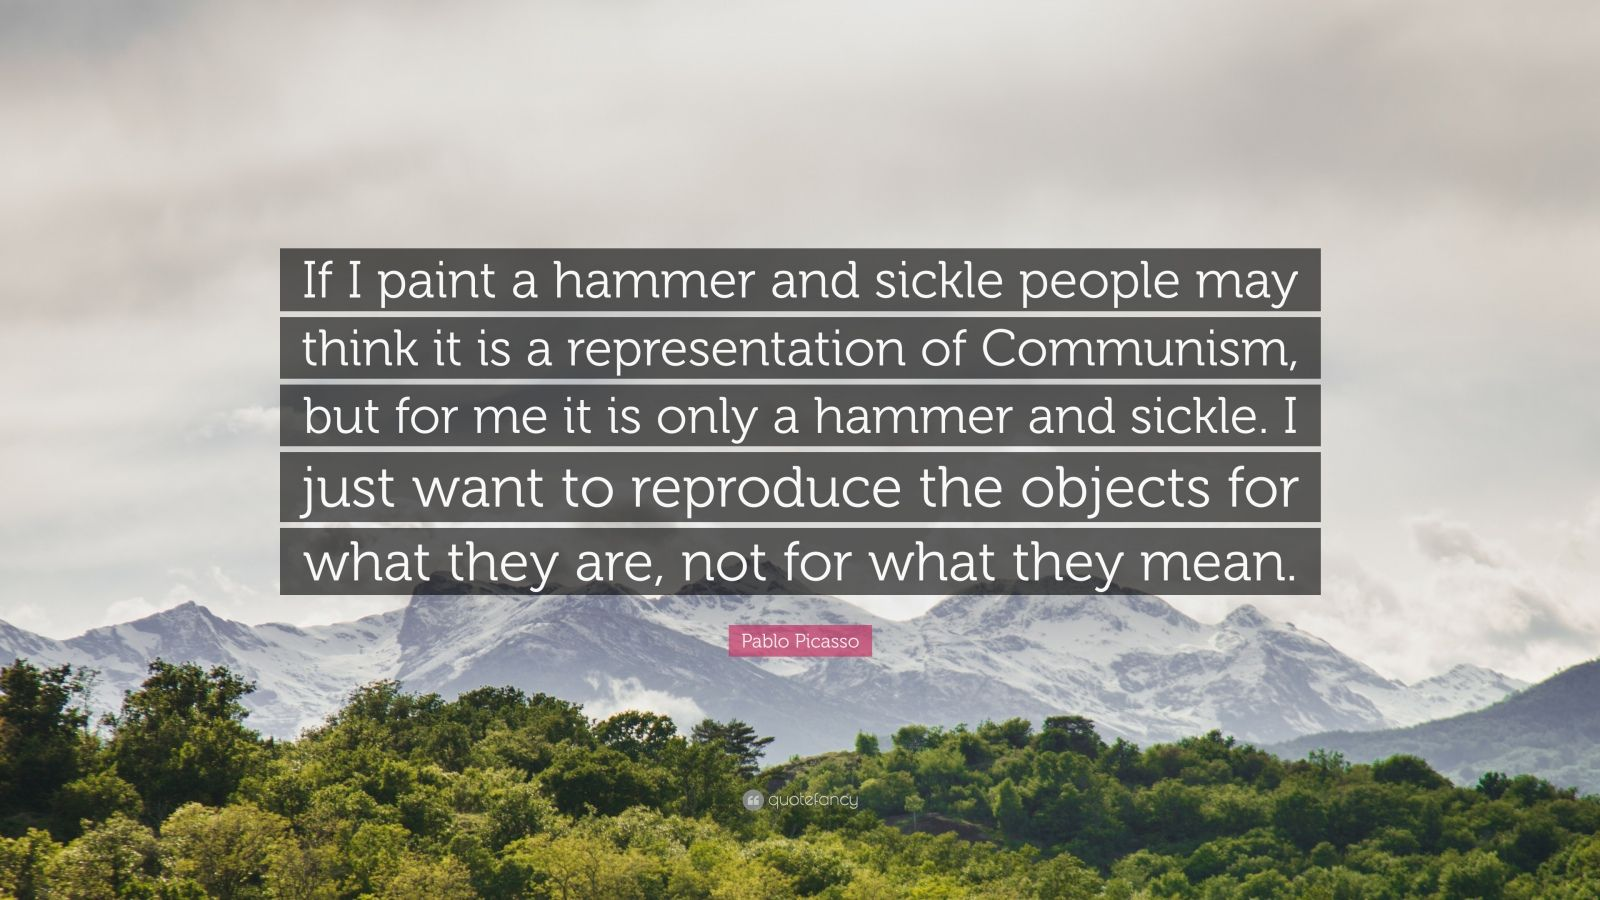 "Pablo Picasso Quote: ""If I paint a hammer and sickle people may think it is a representation of Communism, but for me it is only a hammer and sickle. I just want to reproduce the objects for what they are, not for what they mean."""